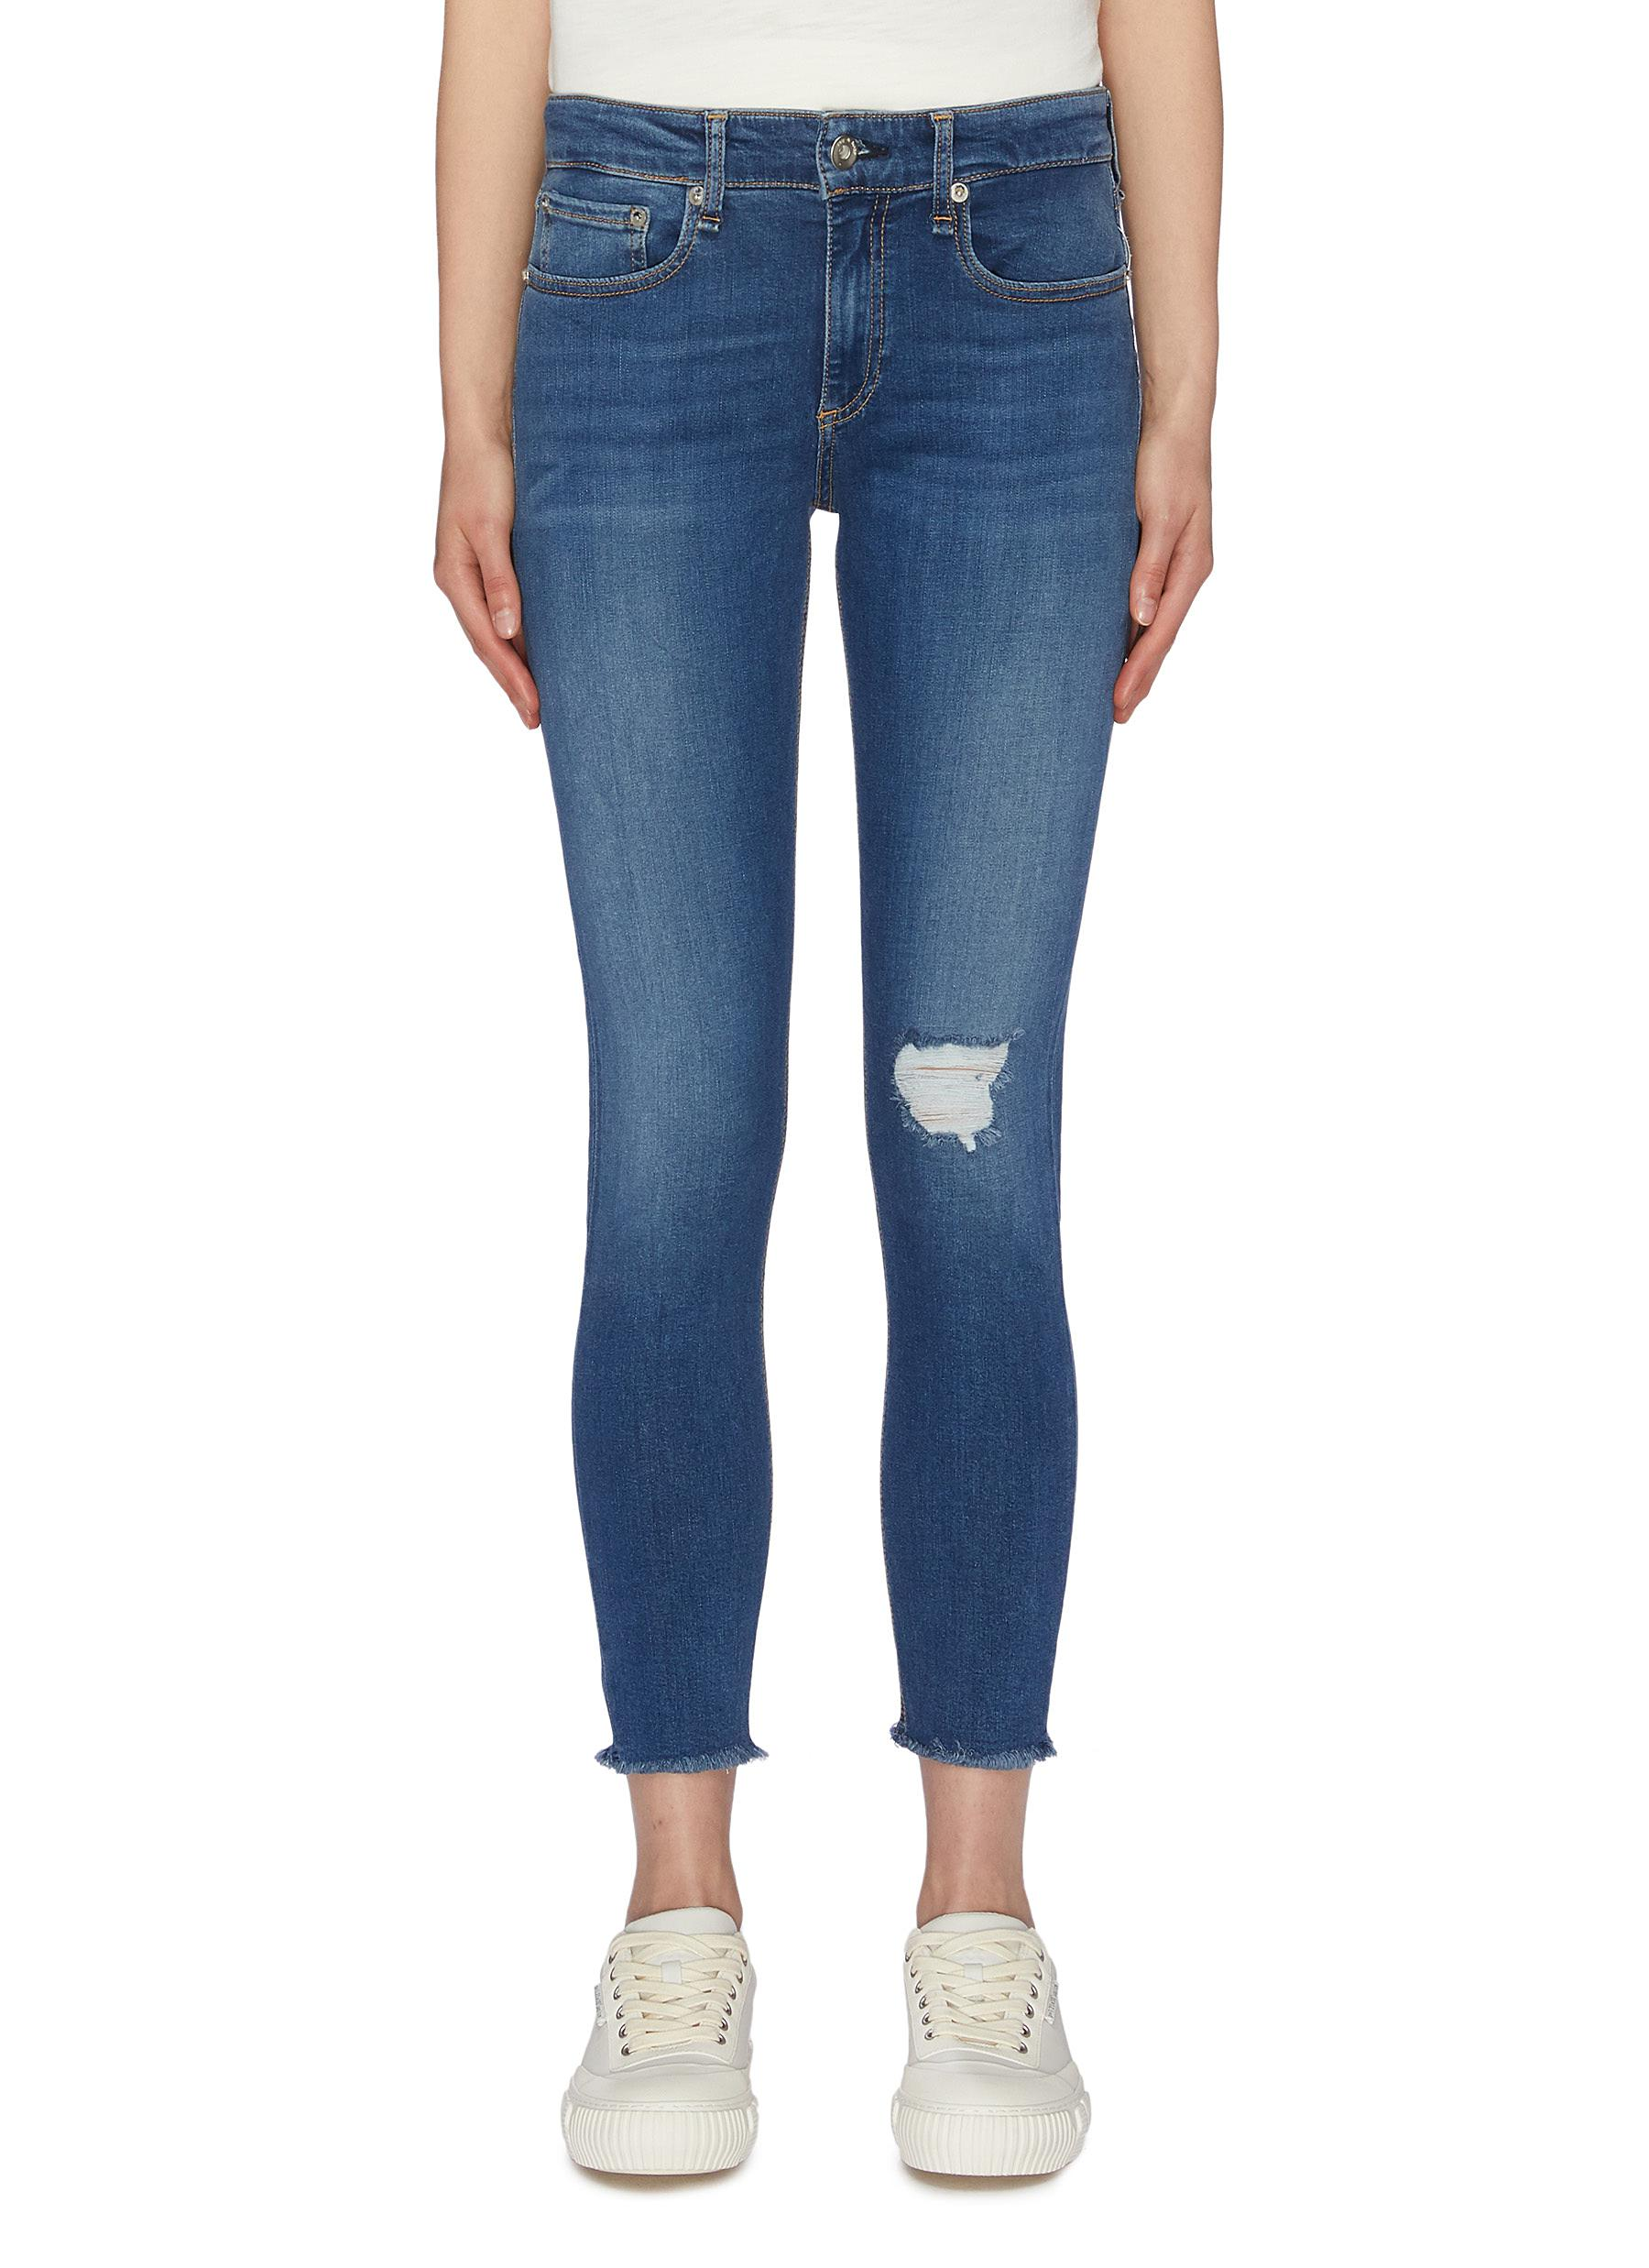 Cate frayed cuff ripped knee skinny jeans by Rag & Bone/Jean